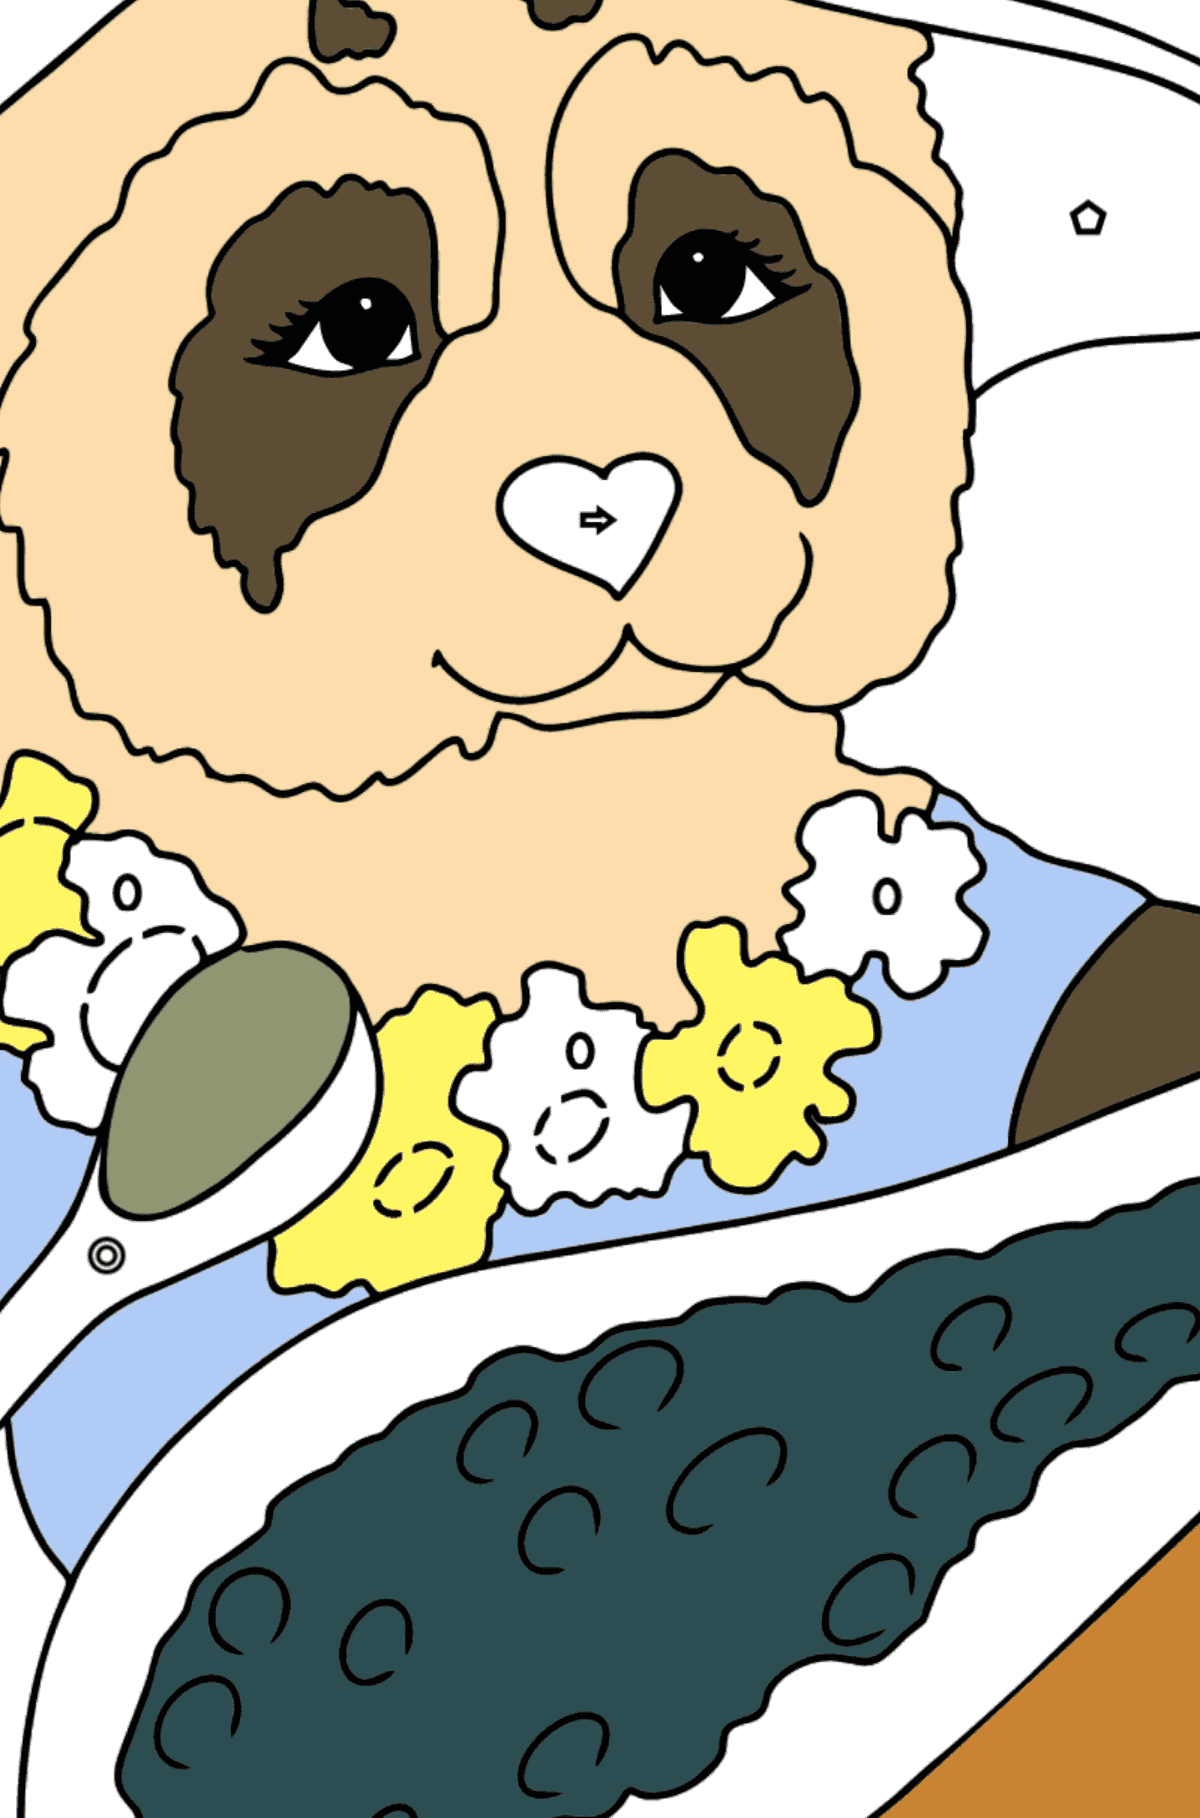 Coloring Page - A Panda is Eating - Coloring by Geometric Shapes for Kids